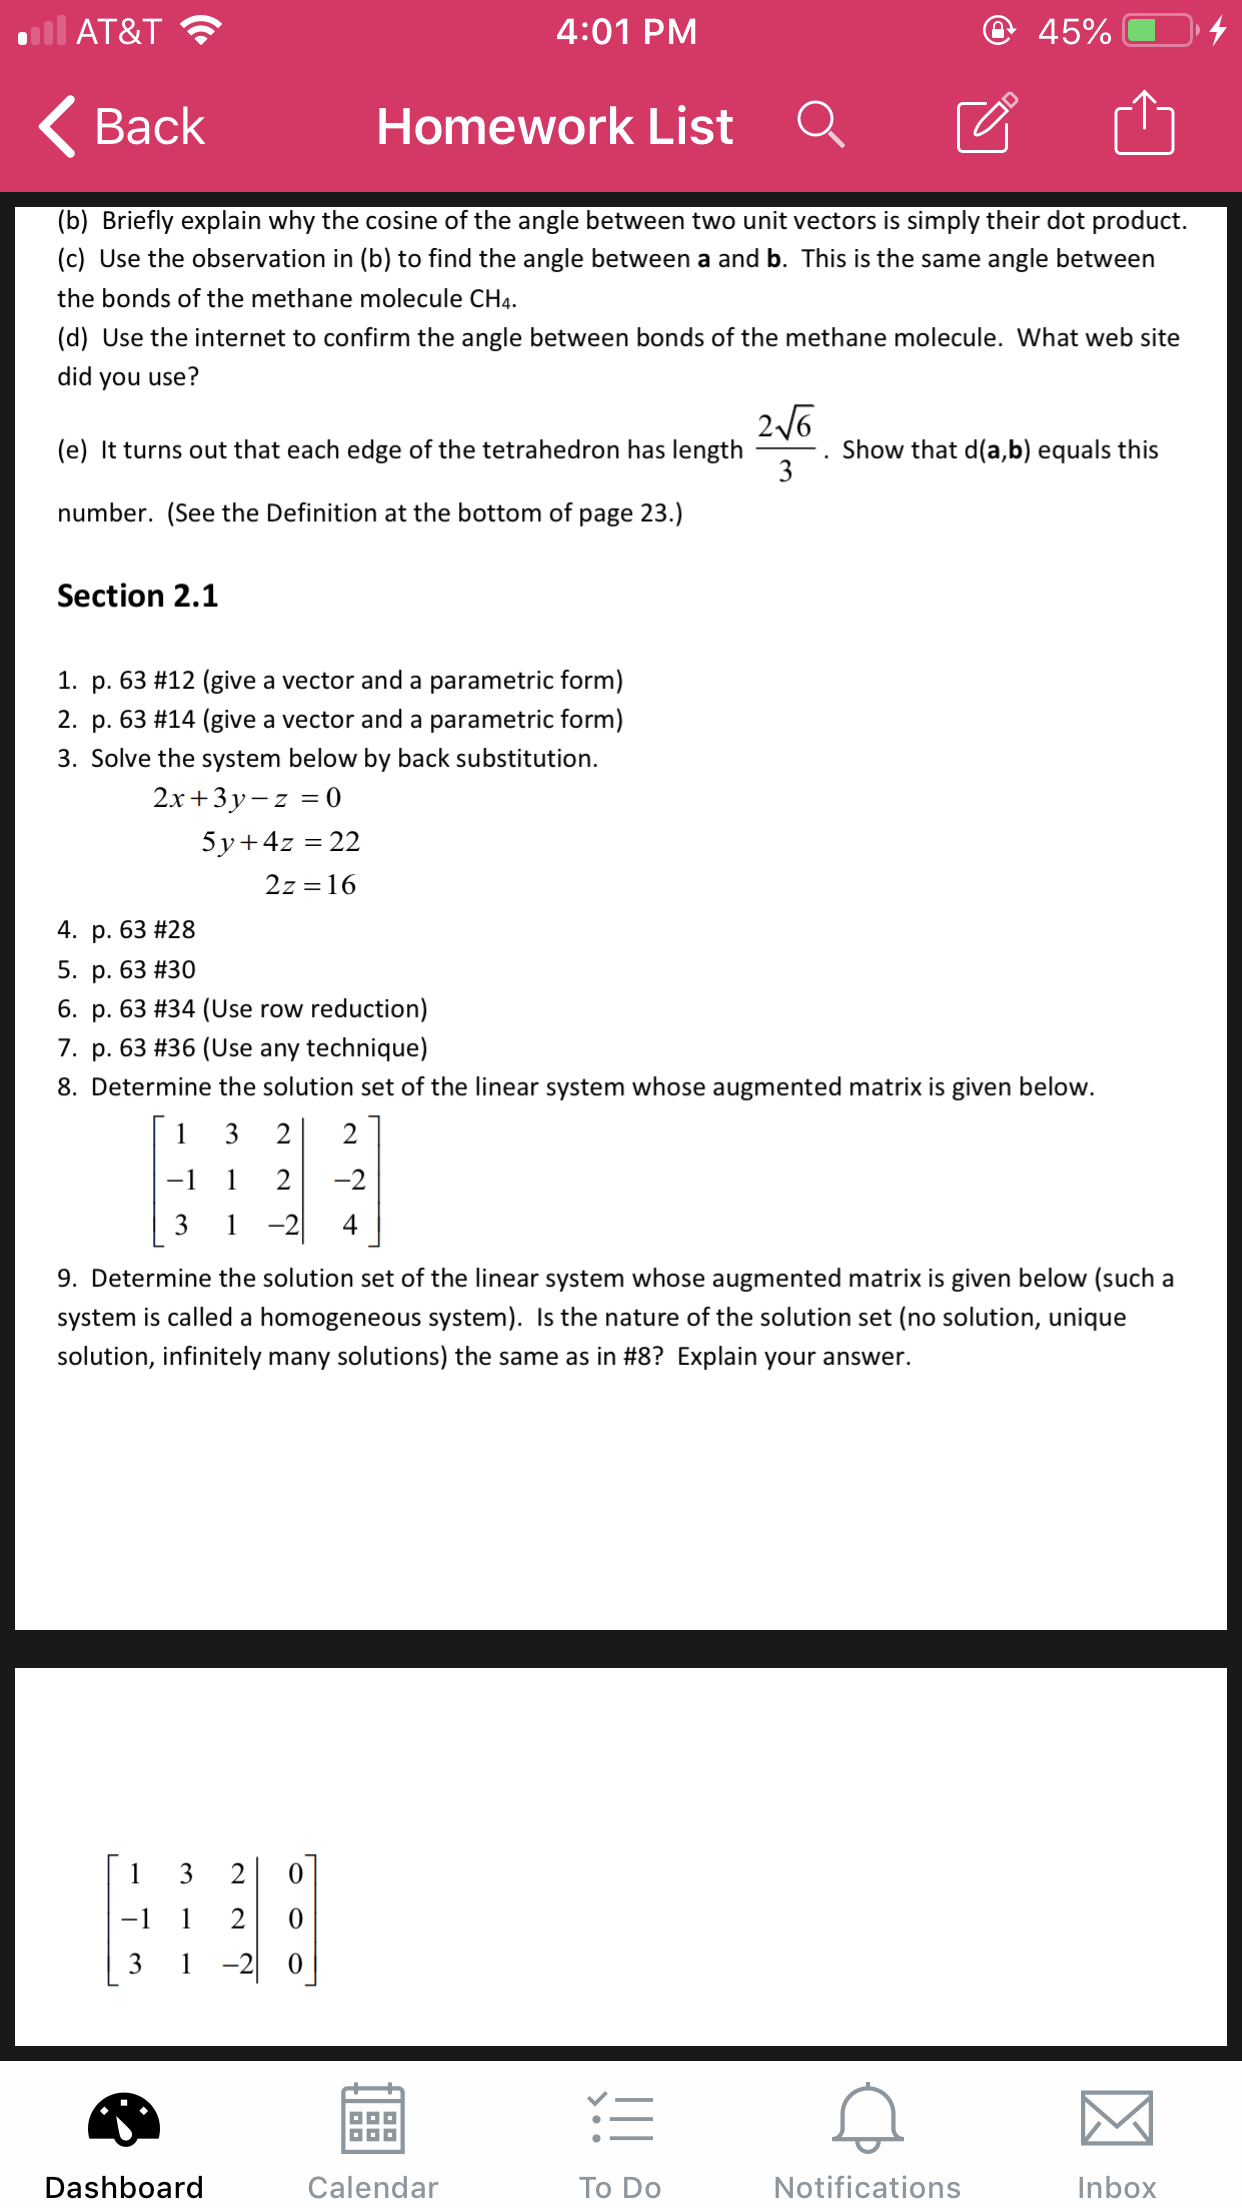 @ 45% AT&T 4:01 PM Homework List Вack (b) Briefly explain why the cosine of the angle between two unit vectors is simply their dot product. (c) Use the observation in (b) to find the angle between a and b. This is the same angle between the bonds of the methane molecule CH4 (d) Use the internet to confirm the angle between bonds of the methane molecule. What web site did you use? 26 Show that d(a,b) equals this 3 (e) It turns out that each edge of the tetrahedron has length number. (See the Definition at the bottom of page 23.) Section 2.1 1. p. 63 #12 (give a vector and a parametric form) 2. p. 63 #14 (give a vector and a parametric form) 3. Solve the system below by back substitution 2.x+3y-z0 5y 4z 22 2z 16 4. p. 63 # 28 5. p. 63 #30 6. p. 63 #34 (Use row reduction) 7. p. 63 #36 (Use any technique) 8. Determine the solution set of the linear system whose augmented matrix is given below. 3 2 2 1 2 -2 -1 -2| 3 1 4 9. Determine the solution set of the linear system whose augmented matrix is given below (such a system is called a homogeneous system). Is the nature of the solution set (no solution, unique solution, infinitely many solutions) the same as in #8? Explain your answer. 1 3 2 -1 1 2 1-20 Notifications Dashboard Calendar To Do Inbox